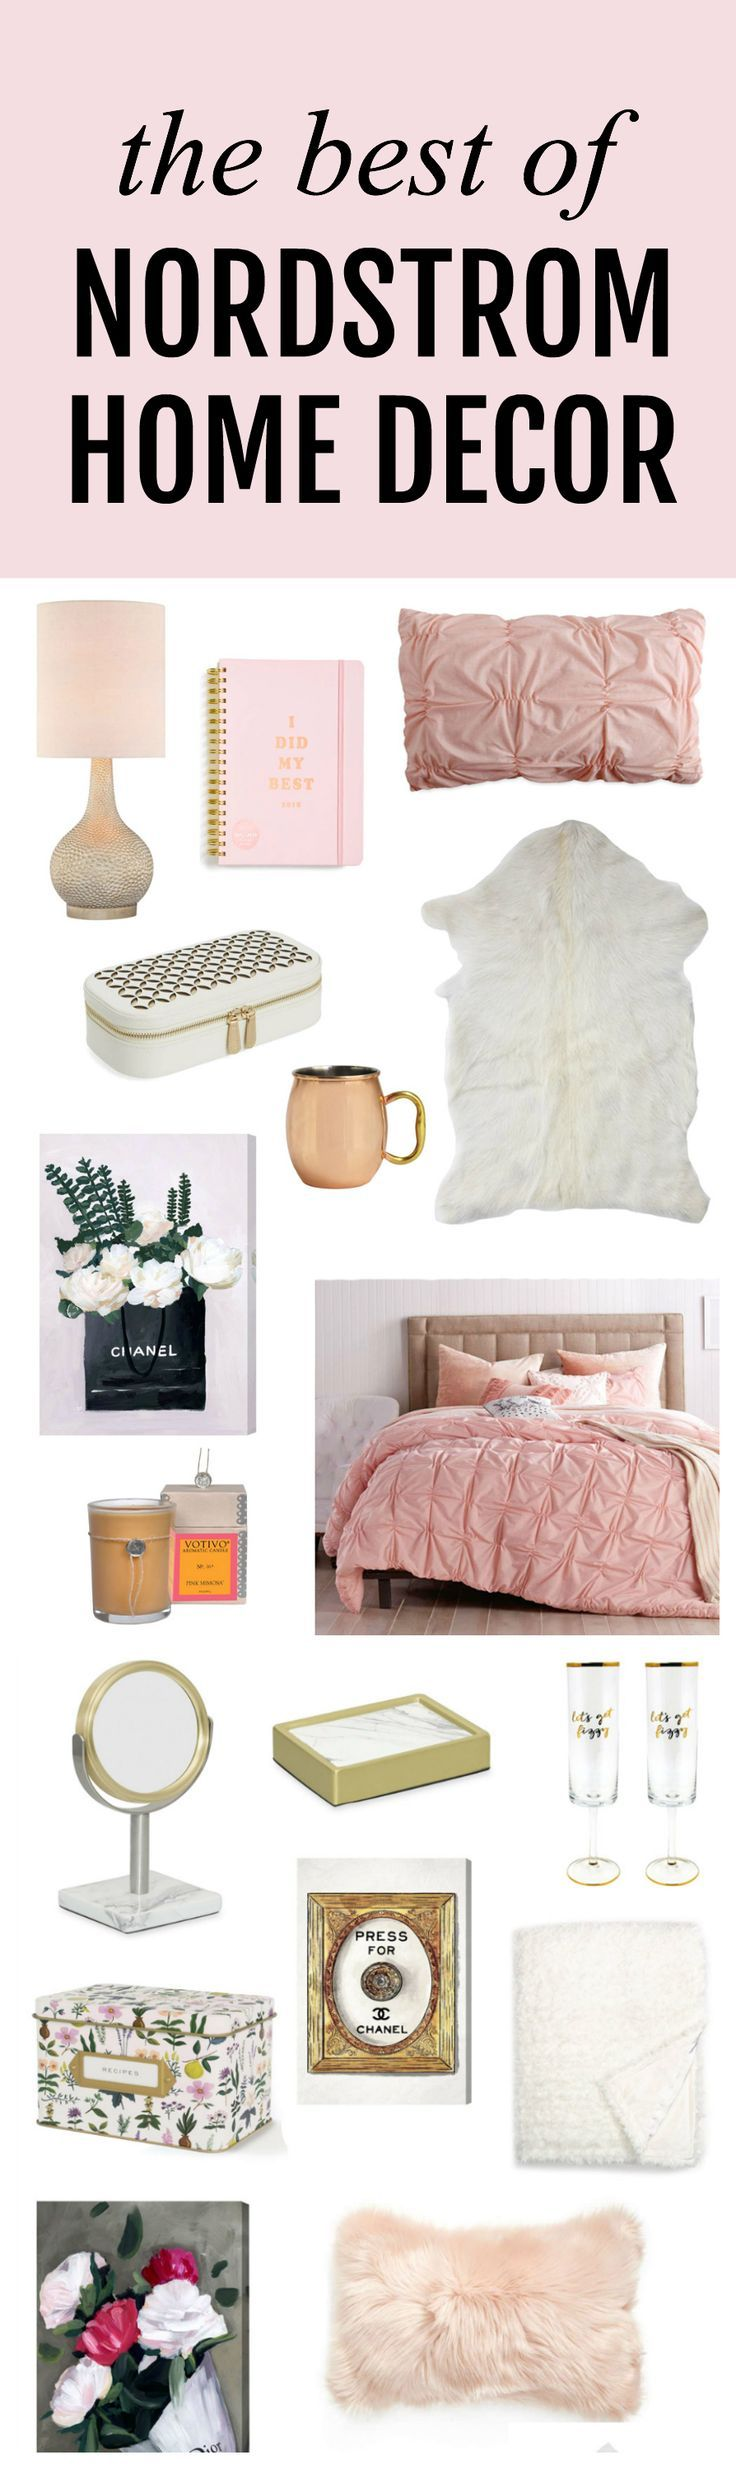 Everything I need to re-decorare my entire house!   Fashion, lifestyle and beauty blogger Michelle Kehoe of Mash Elle shares the best home decor deals from the Nordstrom Anniversary Sale 2017. Everything from bedding, furniture, artwork, pillows, mirrors, candles, diffusers, shower curtains, kitchenware and more are on sale!